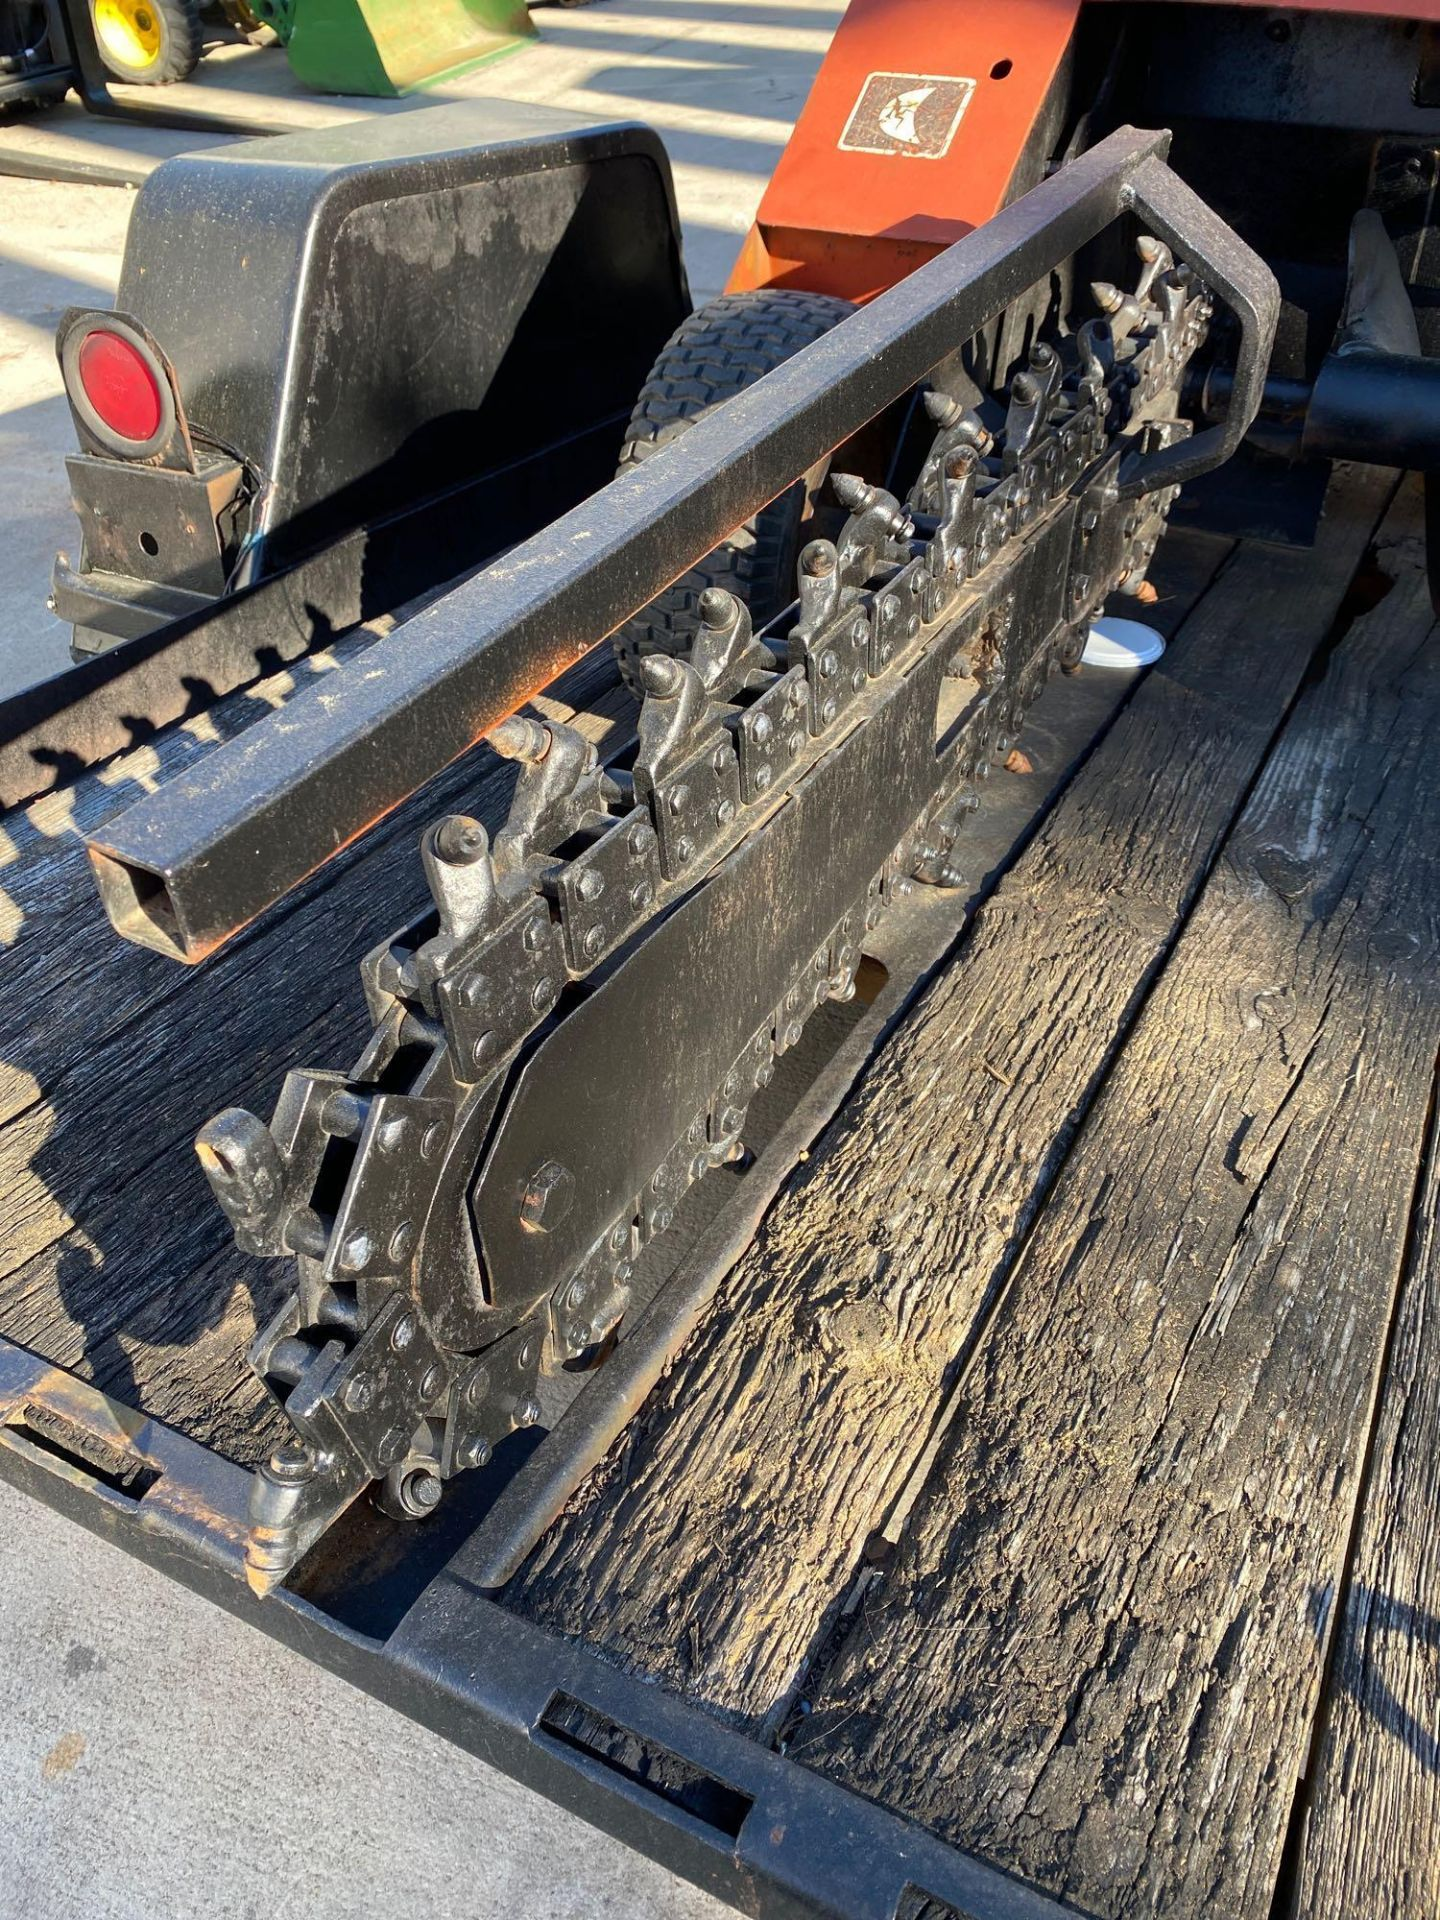 Lot 26A - DITCH WITCH 1420 RUBBER TIRED TRENCHER WITH SUPPORT TRAILER, RUNS AND OPERATES*BILL OF SALE ON TRAIL